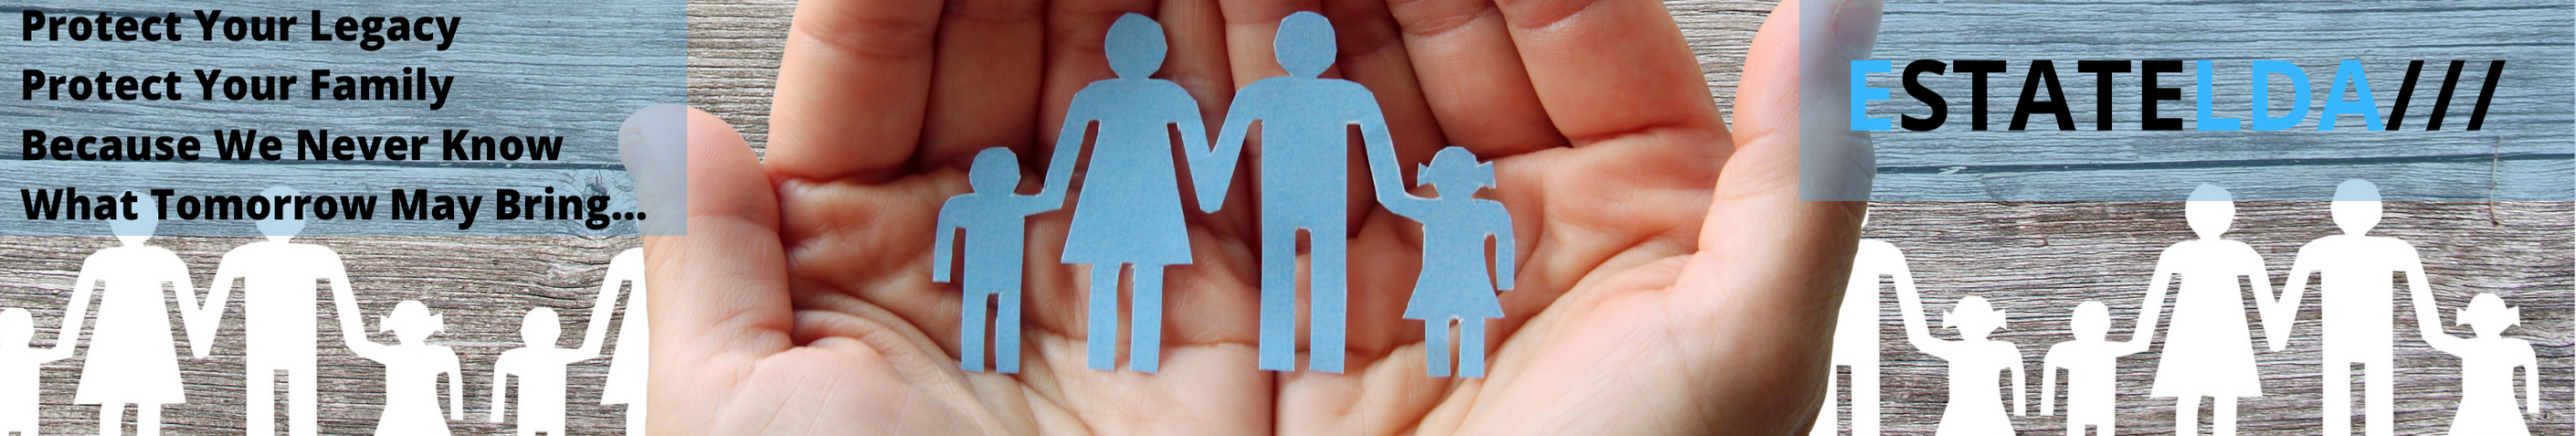 protect your family with a power of attorney